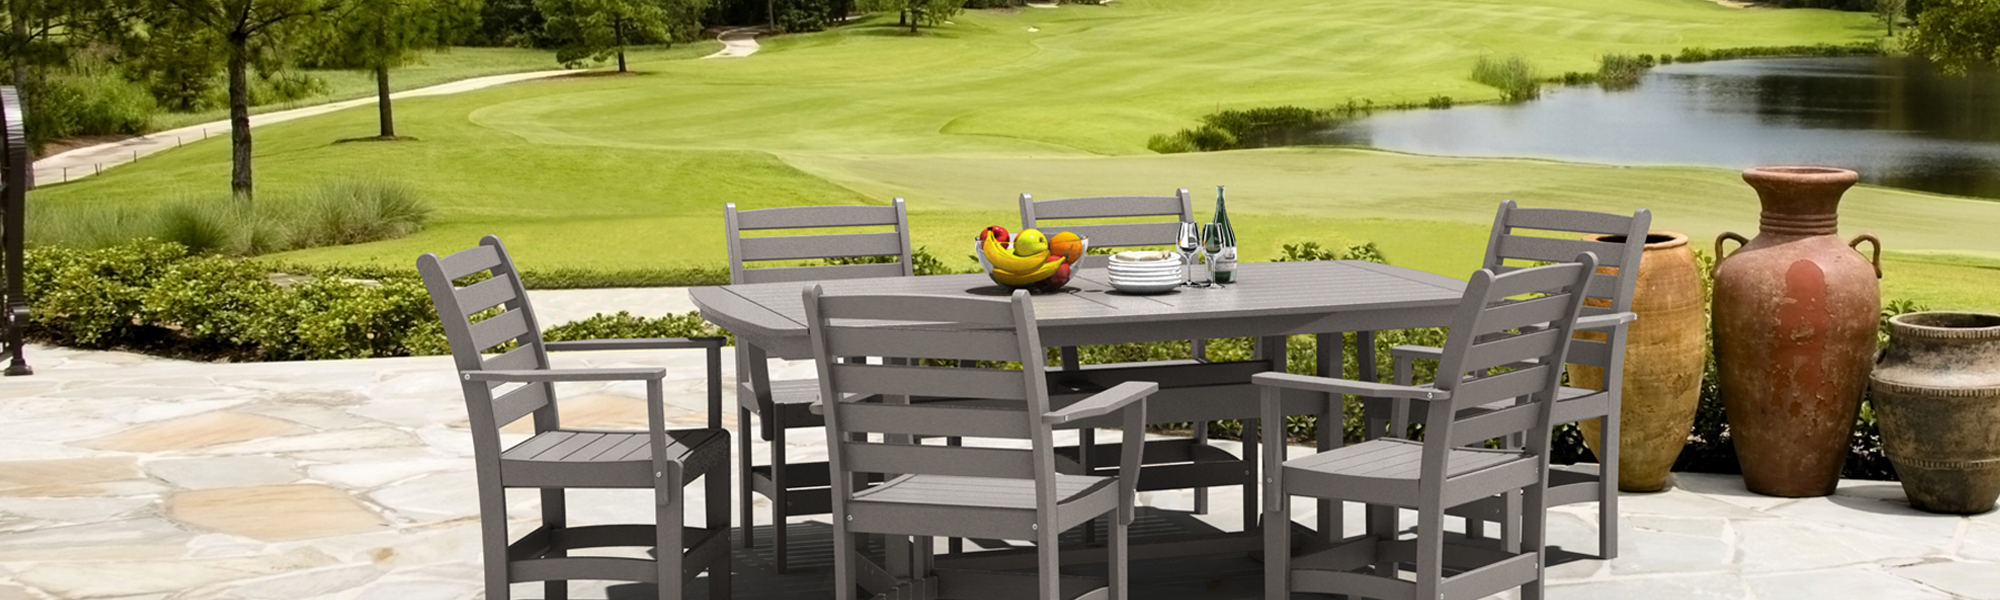 Prestwick Golf Group feature products